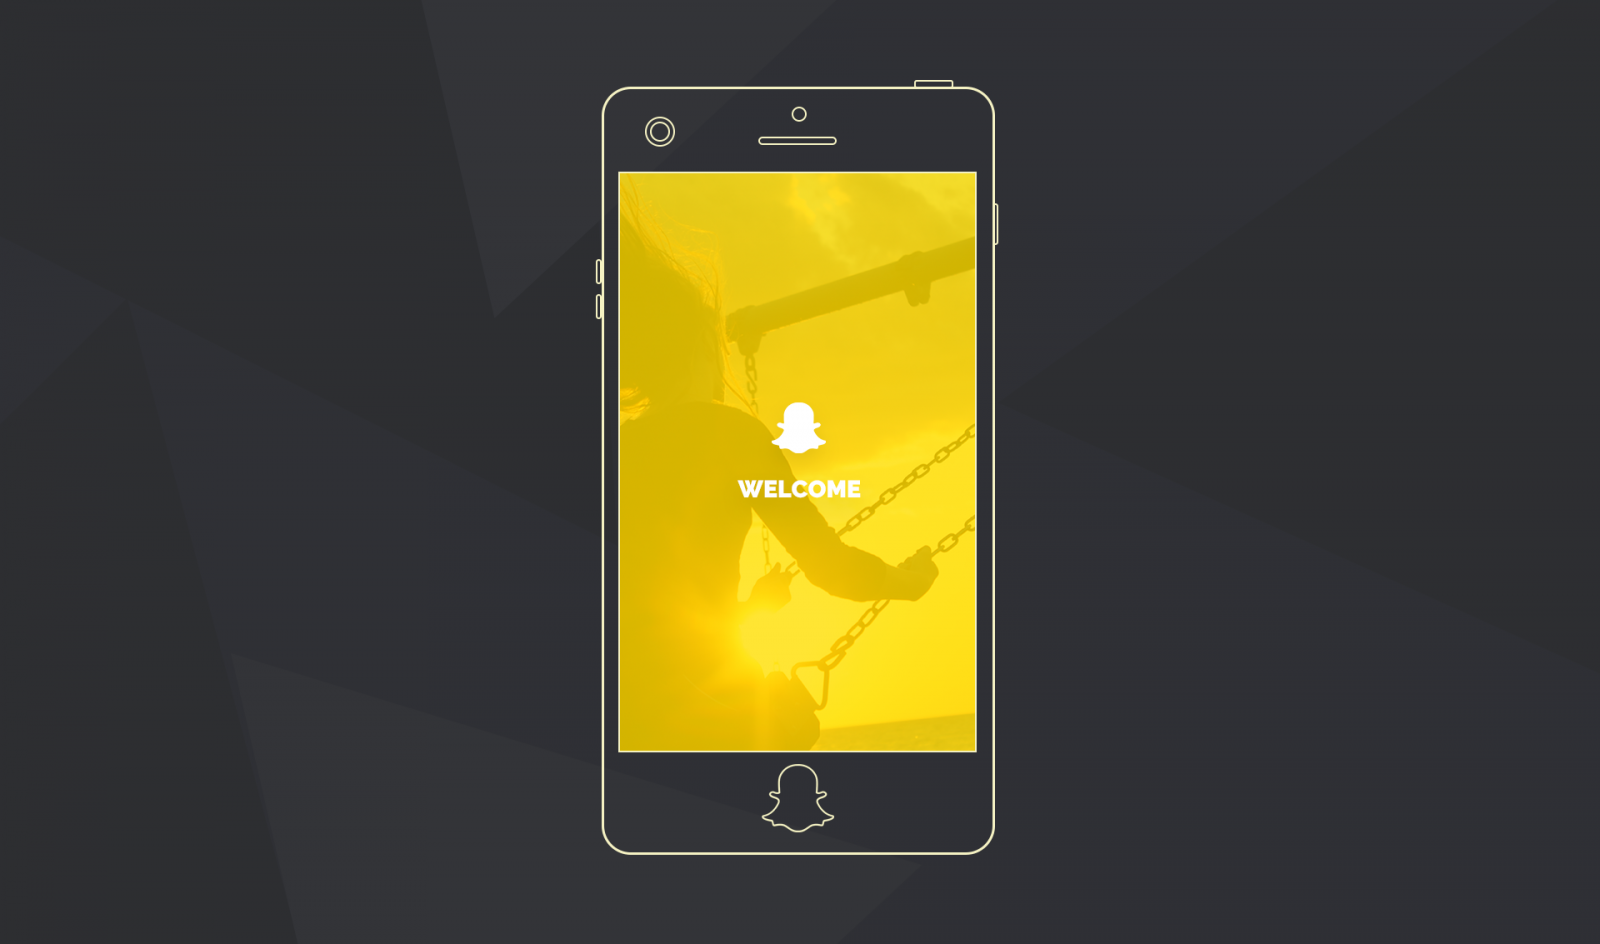 Snapchat Phone concept